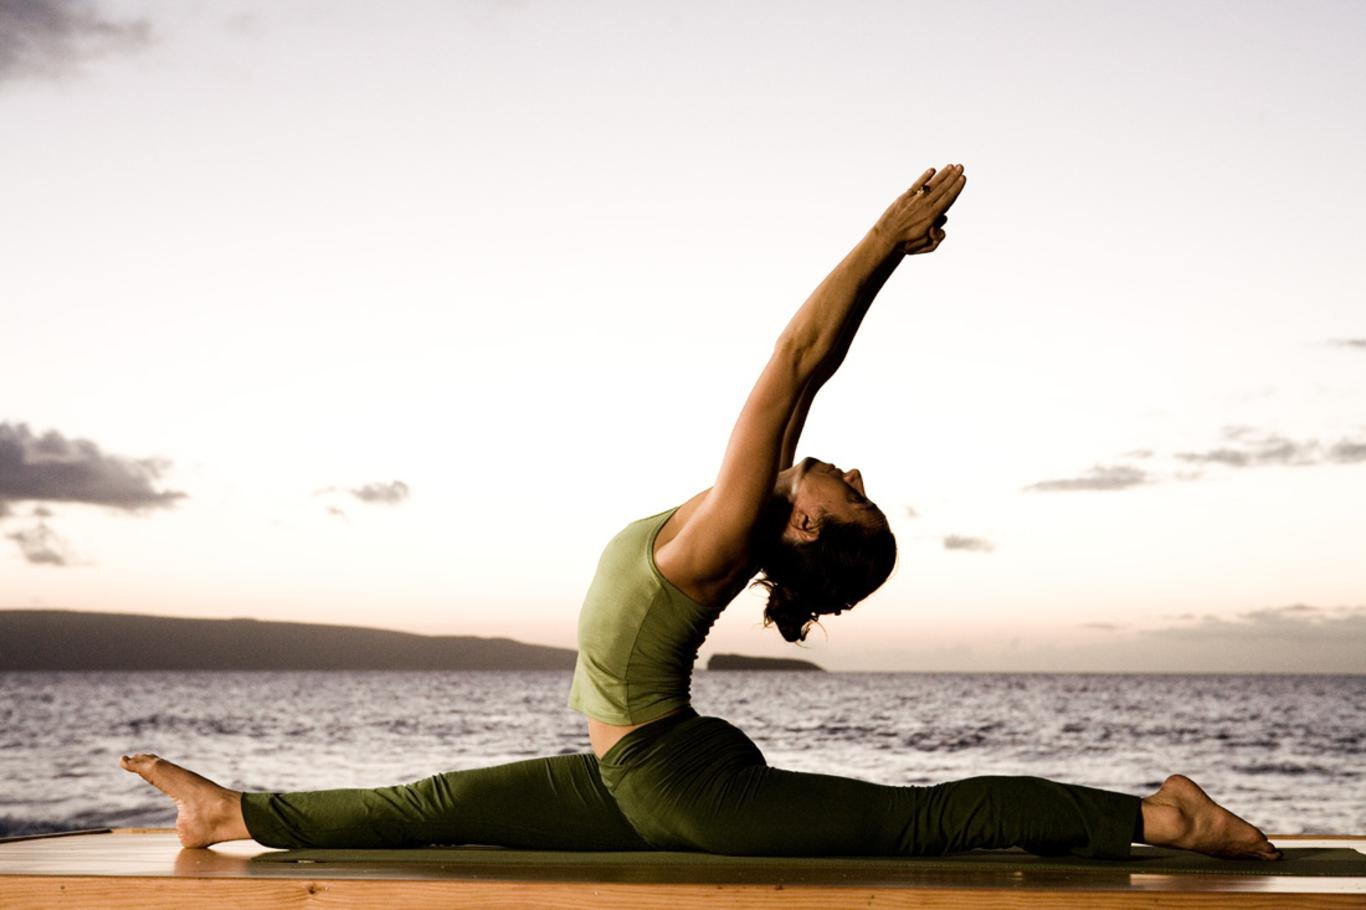 I Will Give You 365 Plr Articles In Yoga Niche